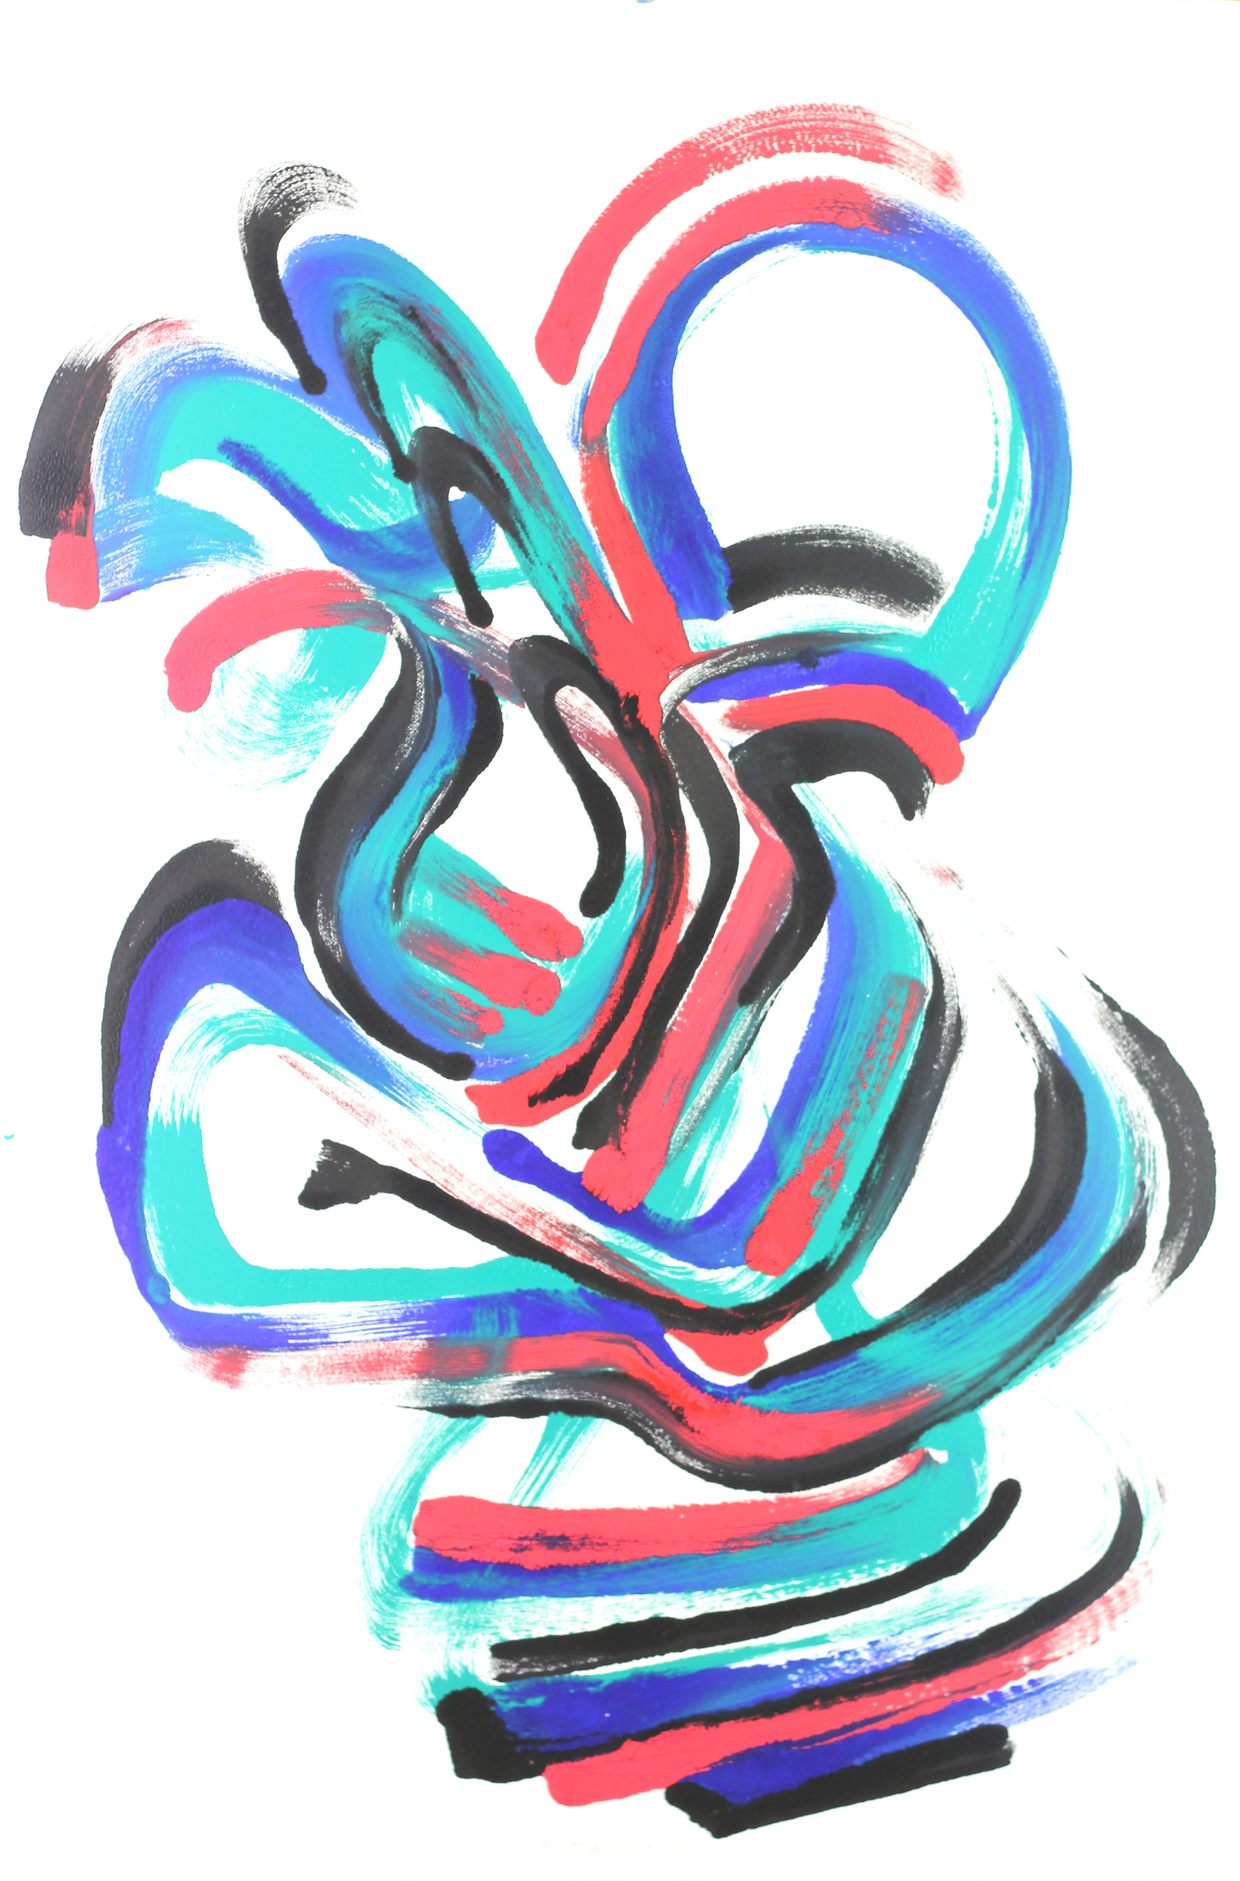 Roger Goldenberg's Visual Jazz Monotype Gallery D has prints pulled from shaped plates. Their style riffs on Goldenberg's shaped visual jazz paintings Entangoed